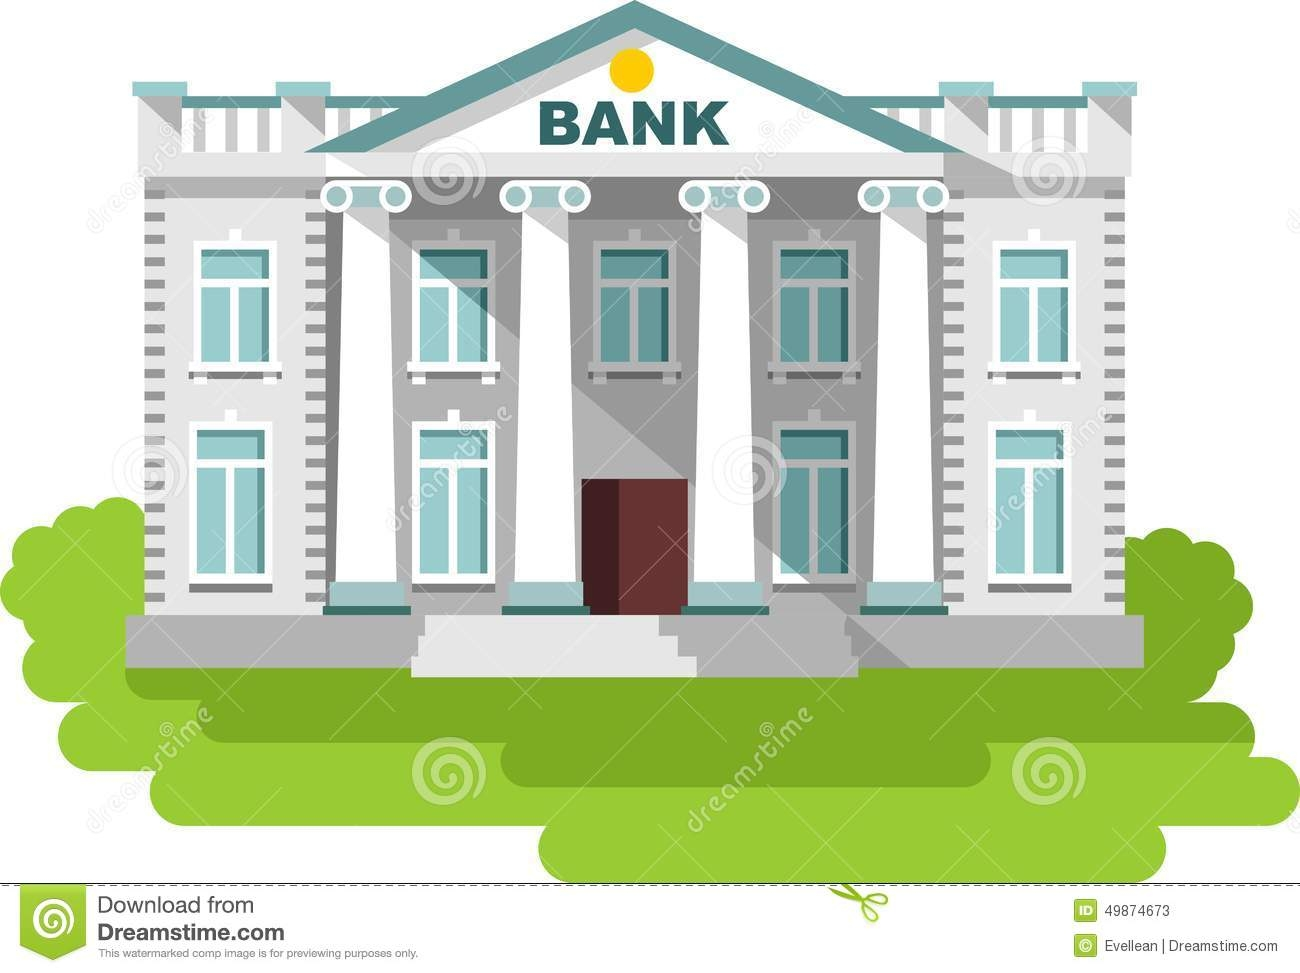 Building clipartfest. Clipart of a bank